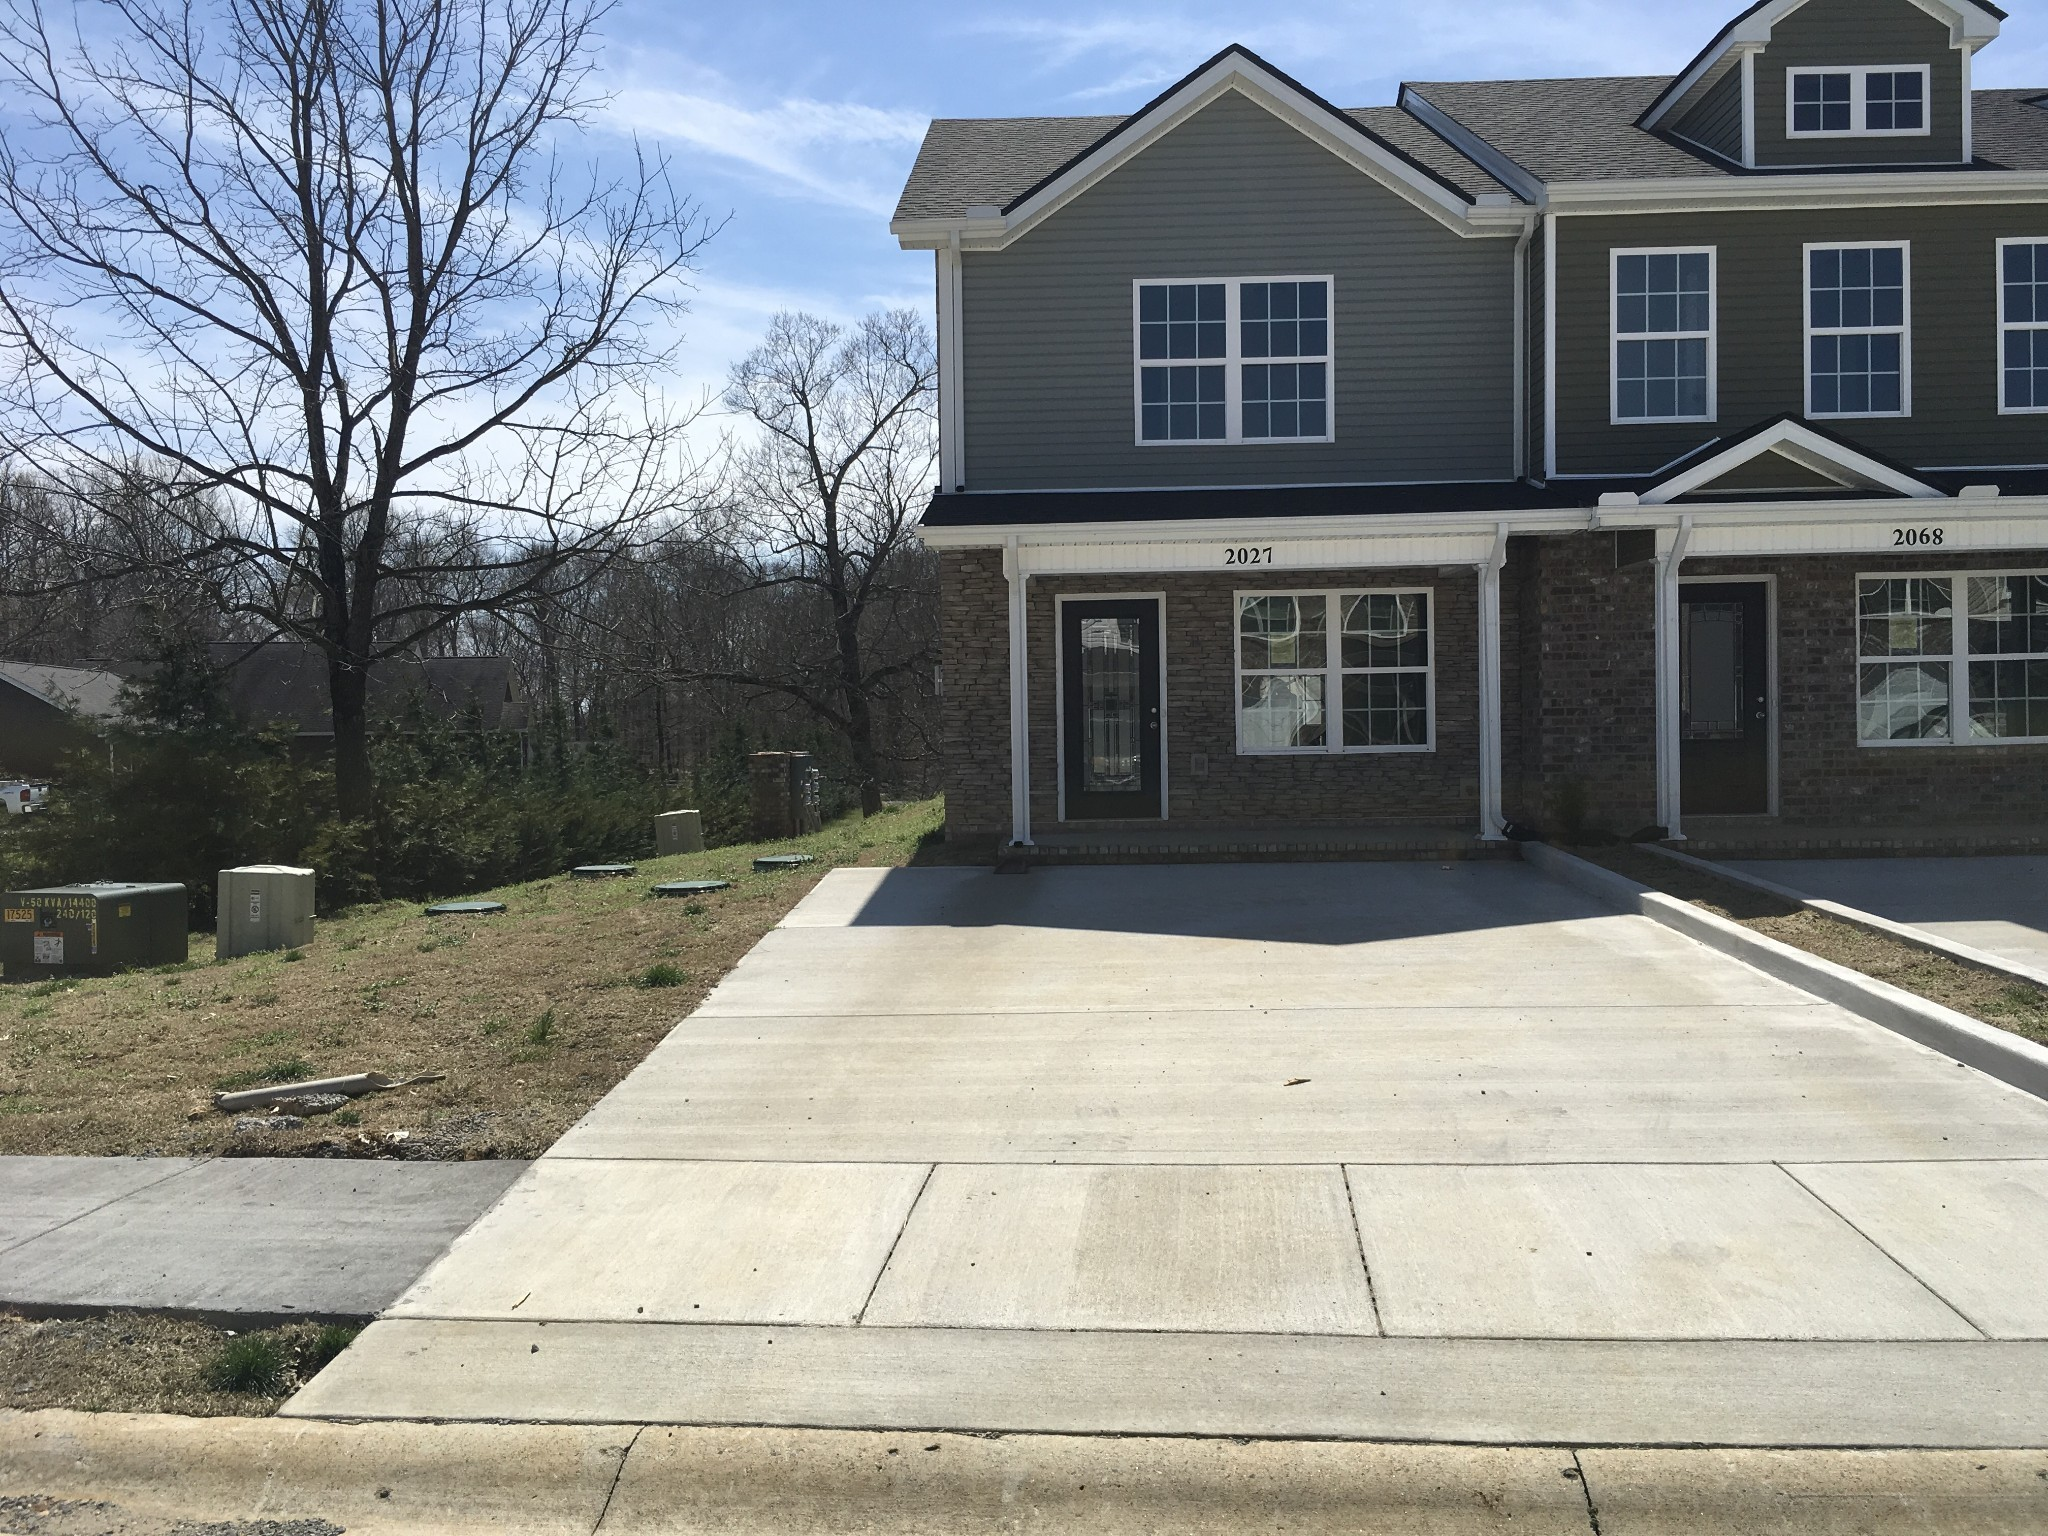 15 unit 15 Downstream Dr Property Photo - Ashland City, TN real estate listing